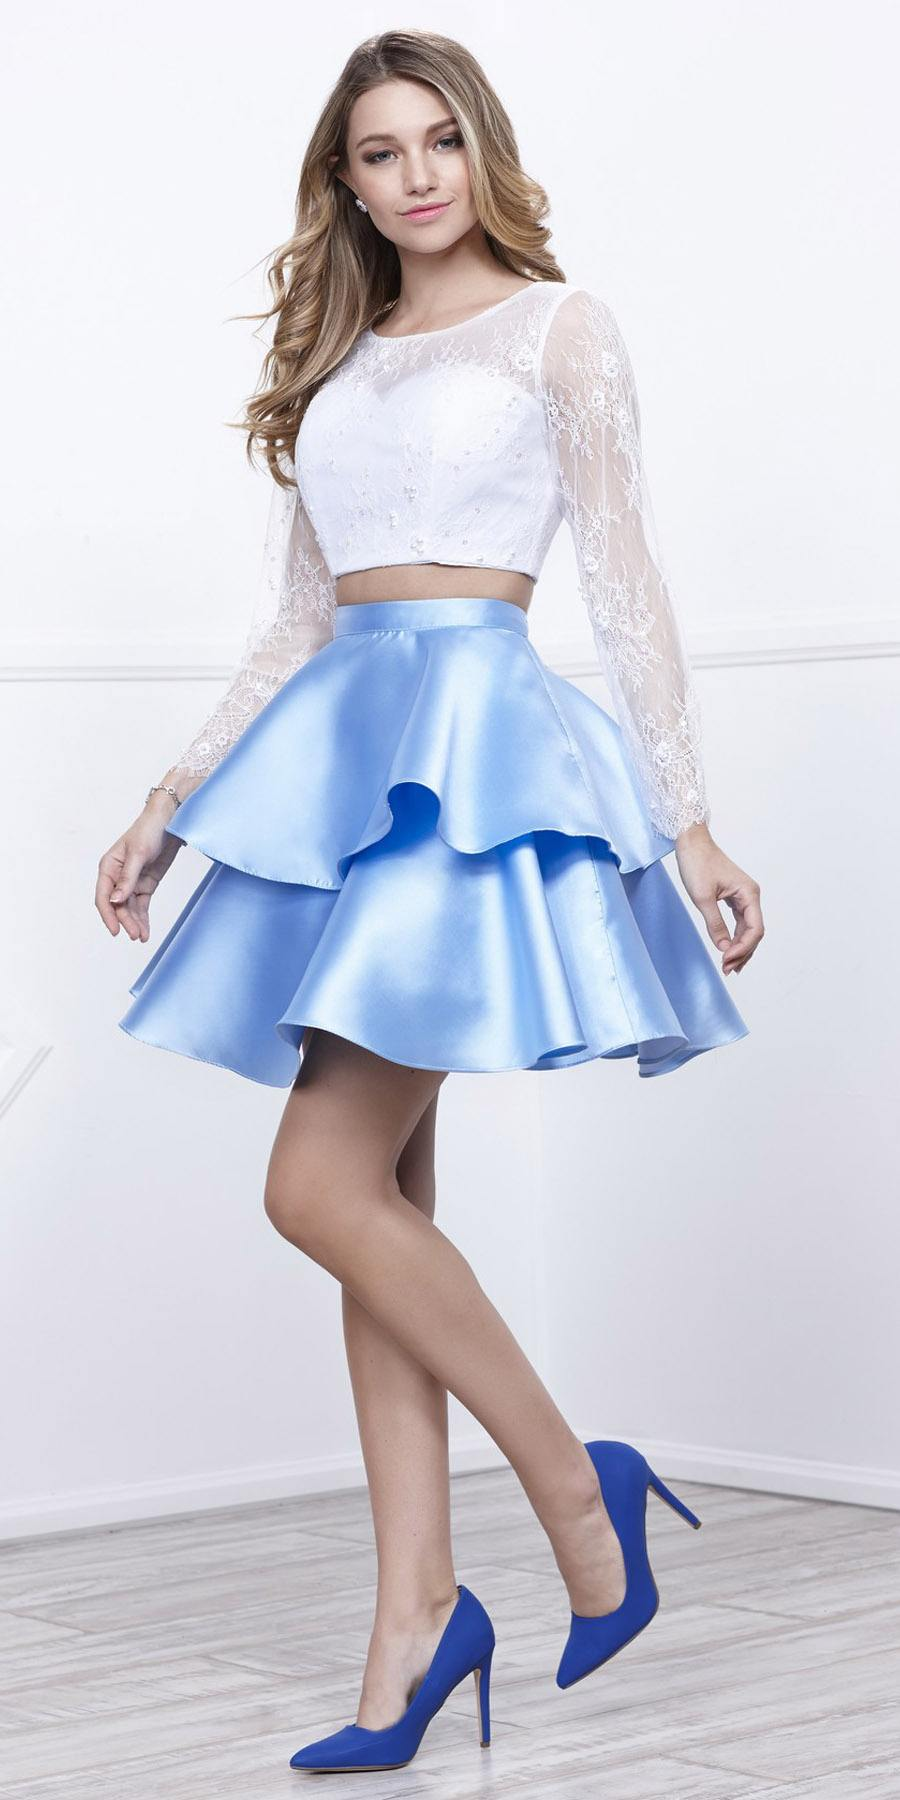 0d3aece1f White Top Ice Blue Skirt Two-Piece Homecoming Dress Long Sleeves. Tap to  expand